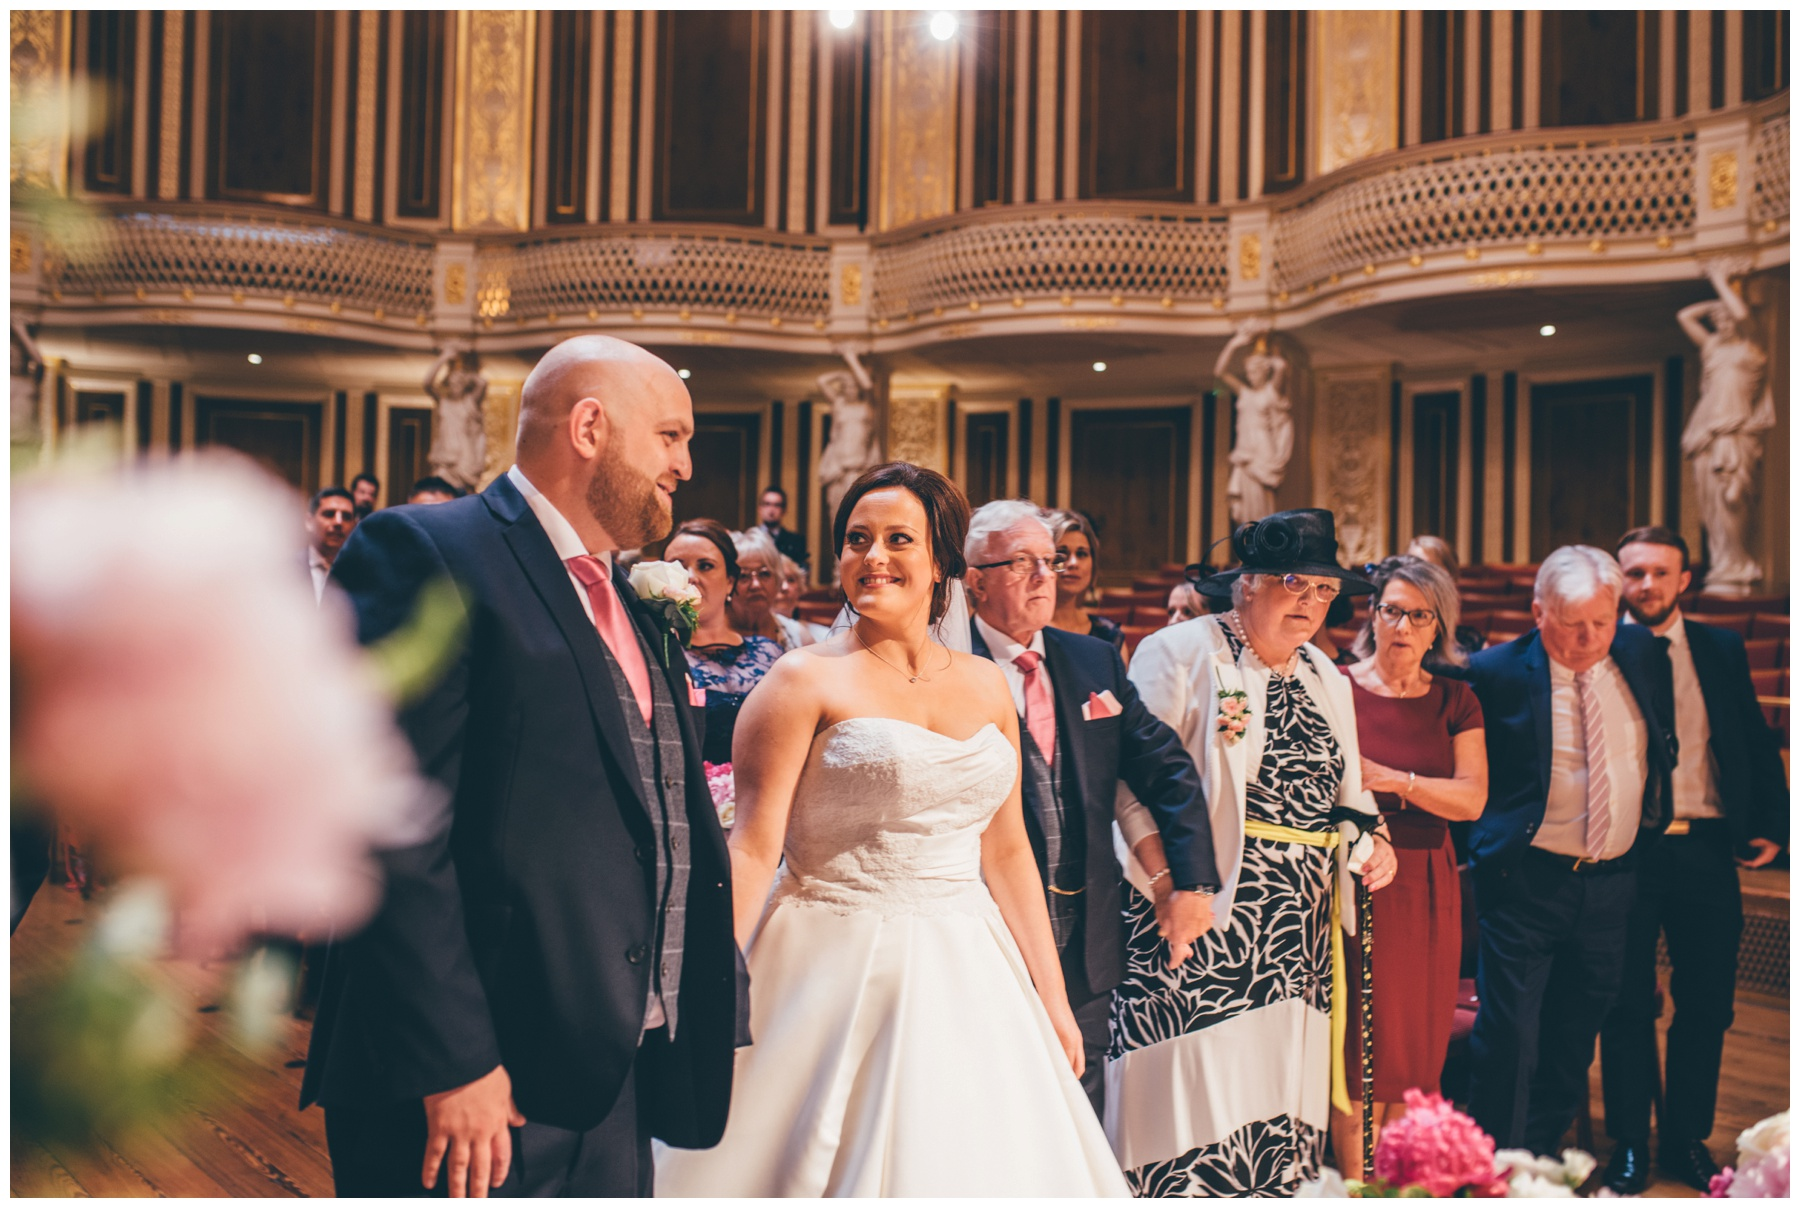 St Georges Hall wedding in Liverpool City Centre.